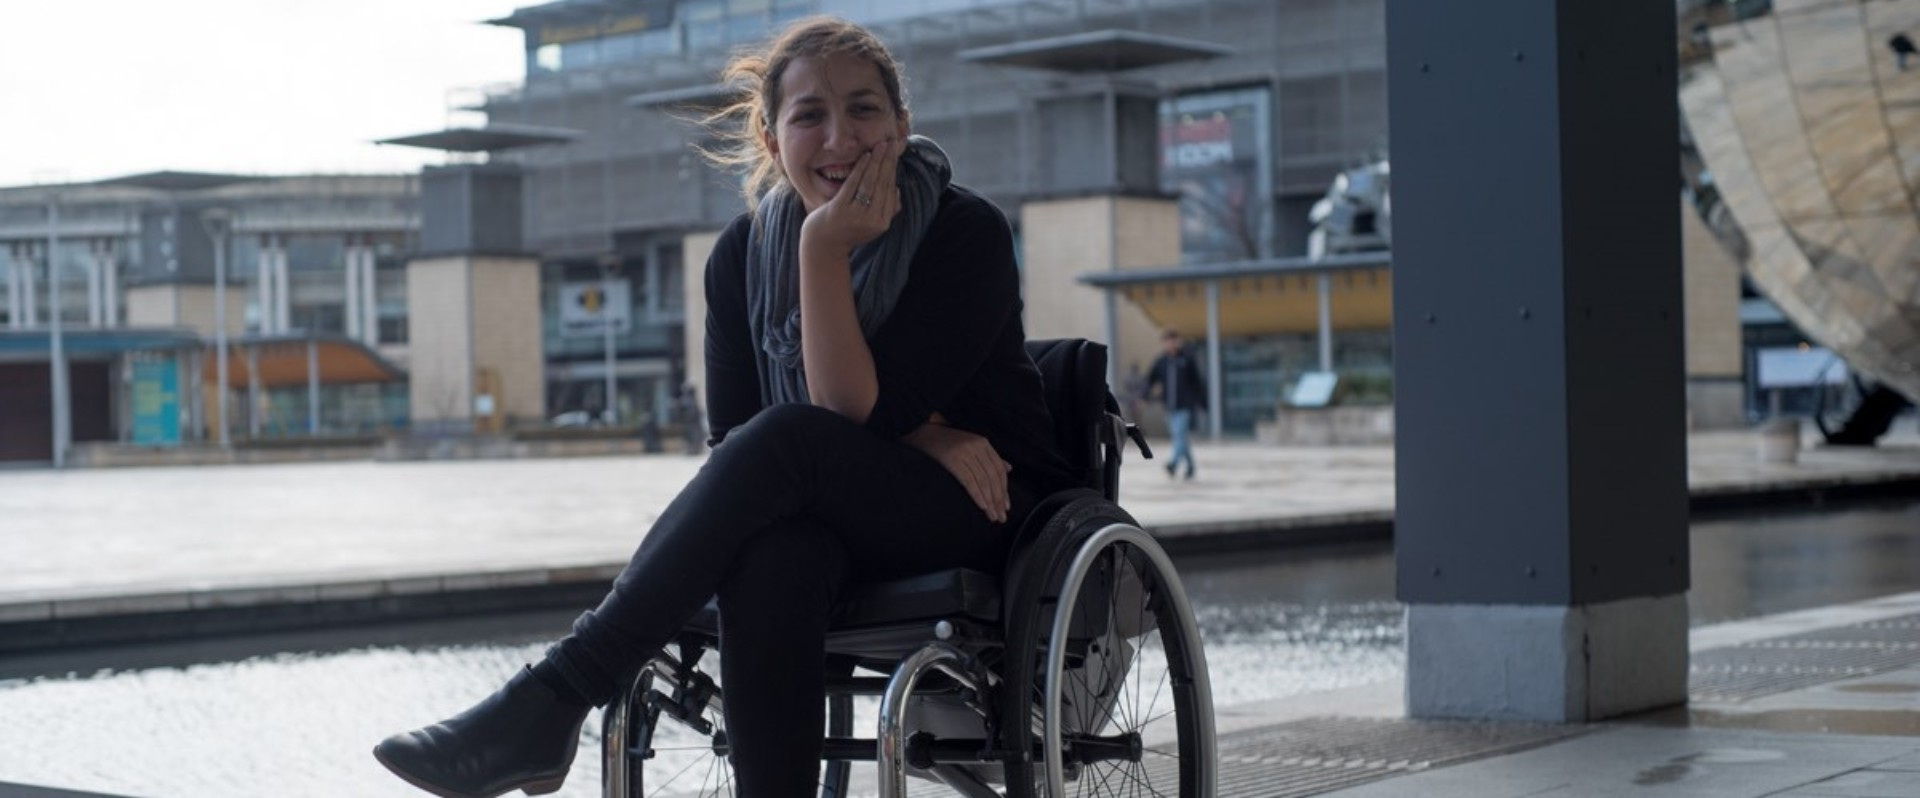 Person sat in manual wheelchair, leaning face on one hand, smiling, outside